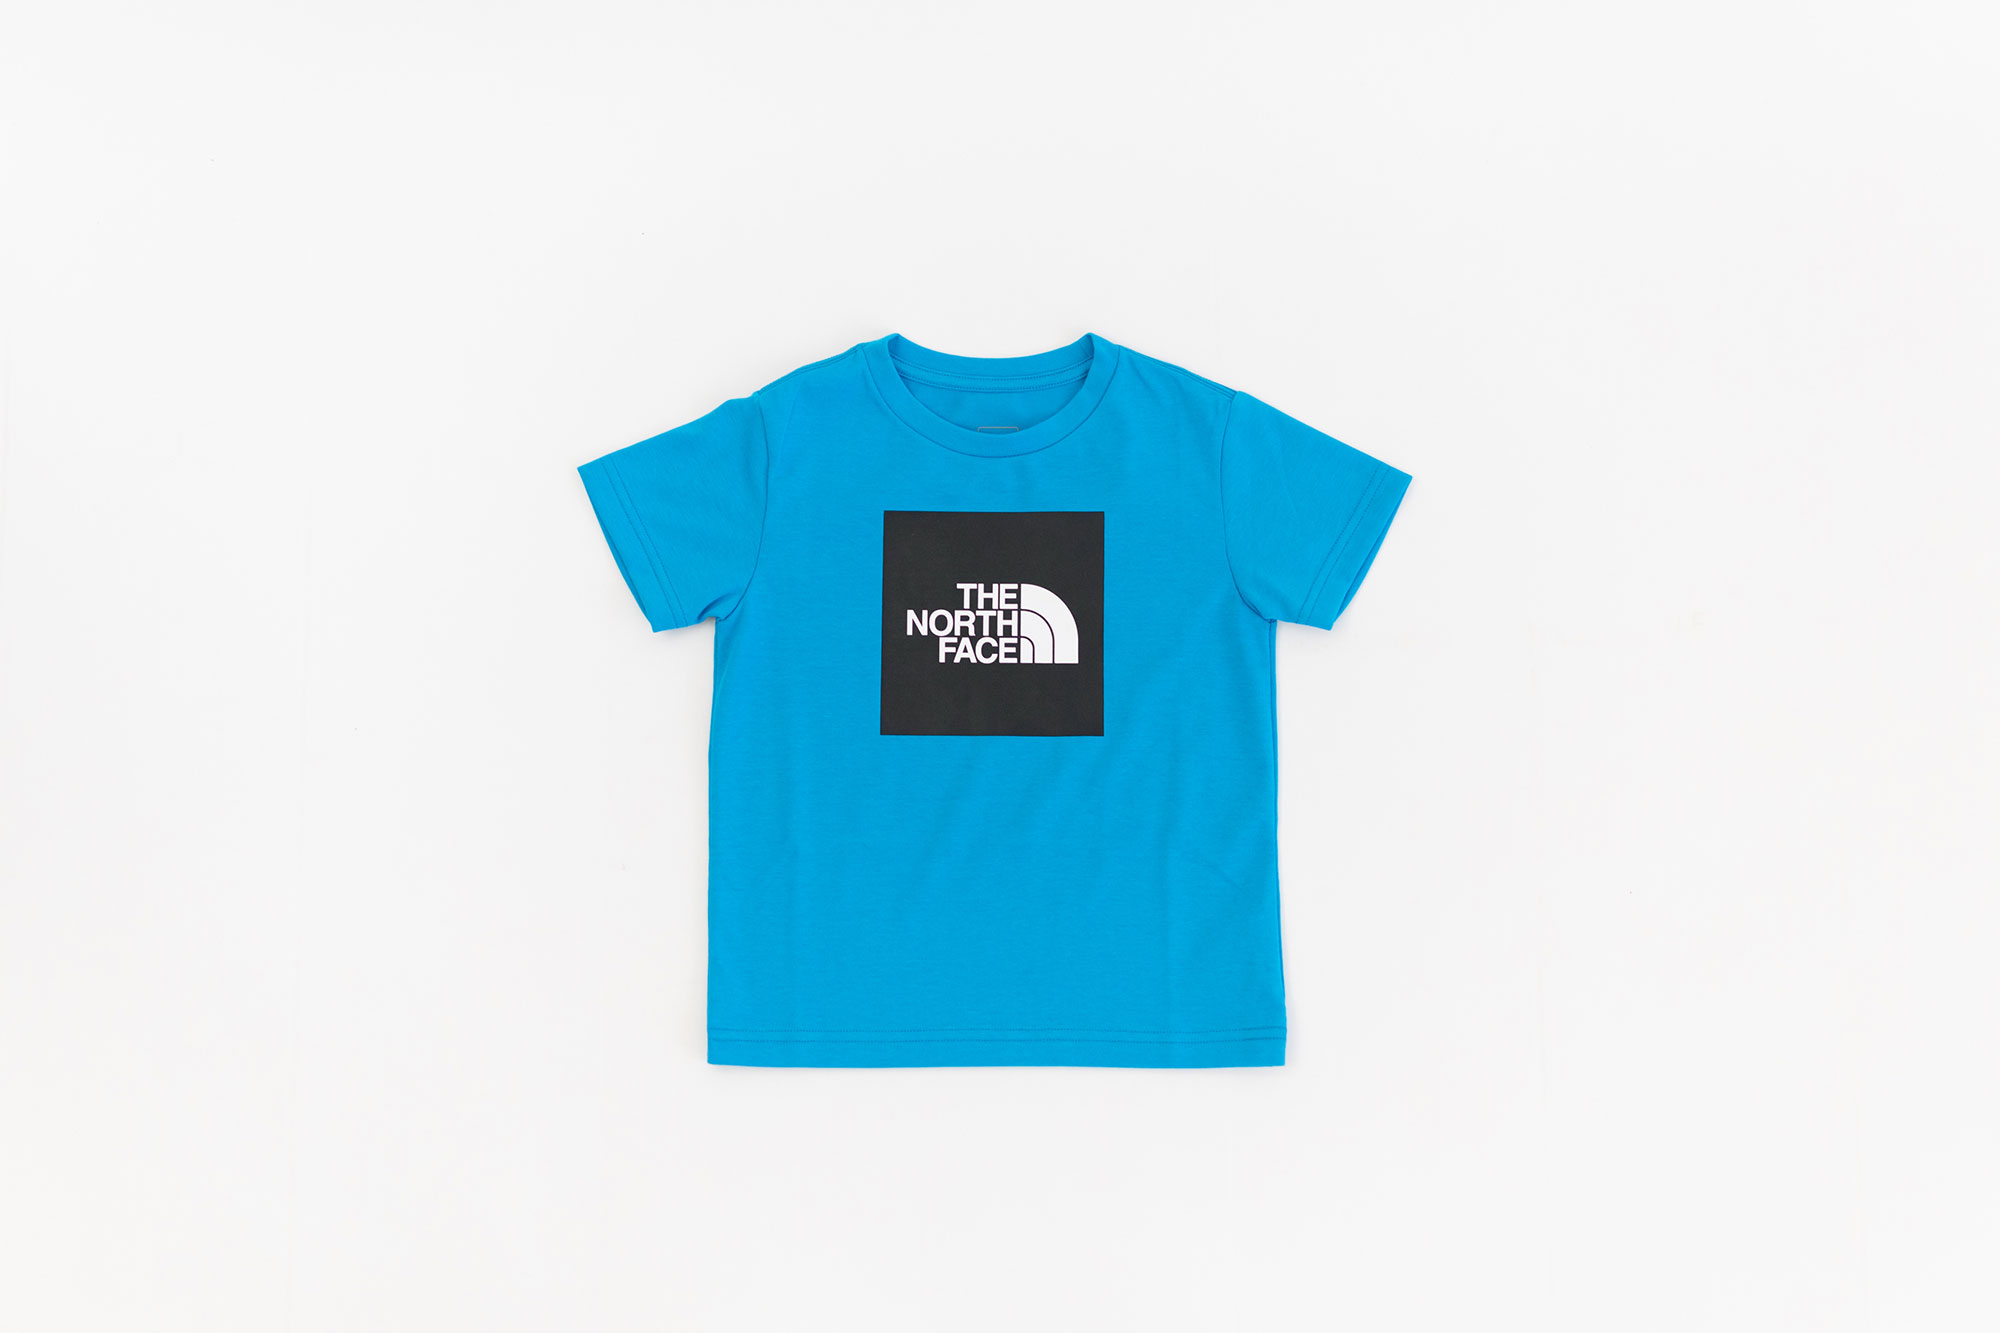 THE NORTH FACE ショートスリーブ カラードビッグロゴTシャツ キッズ